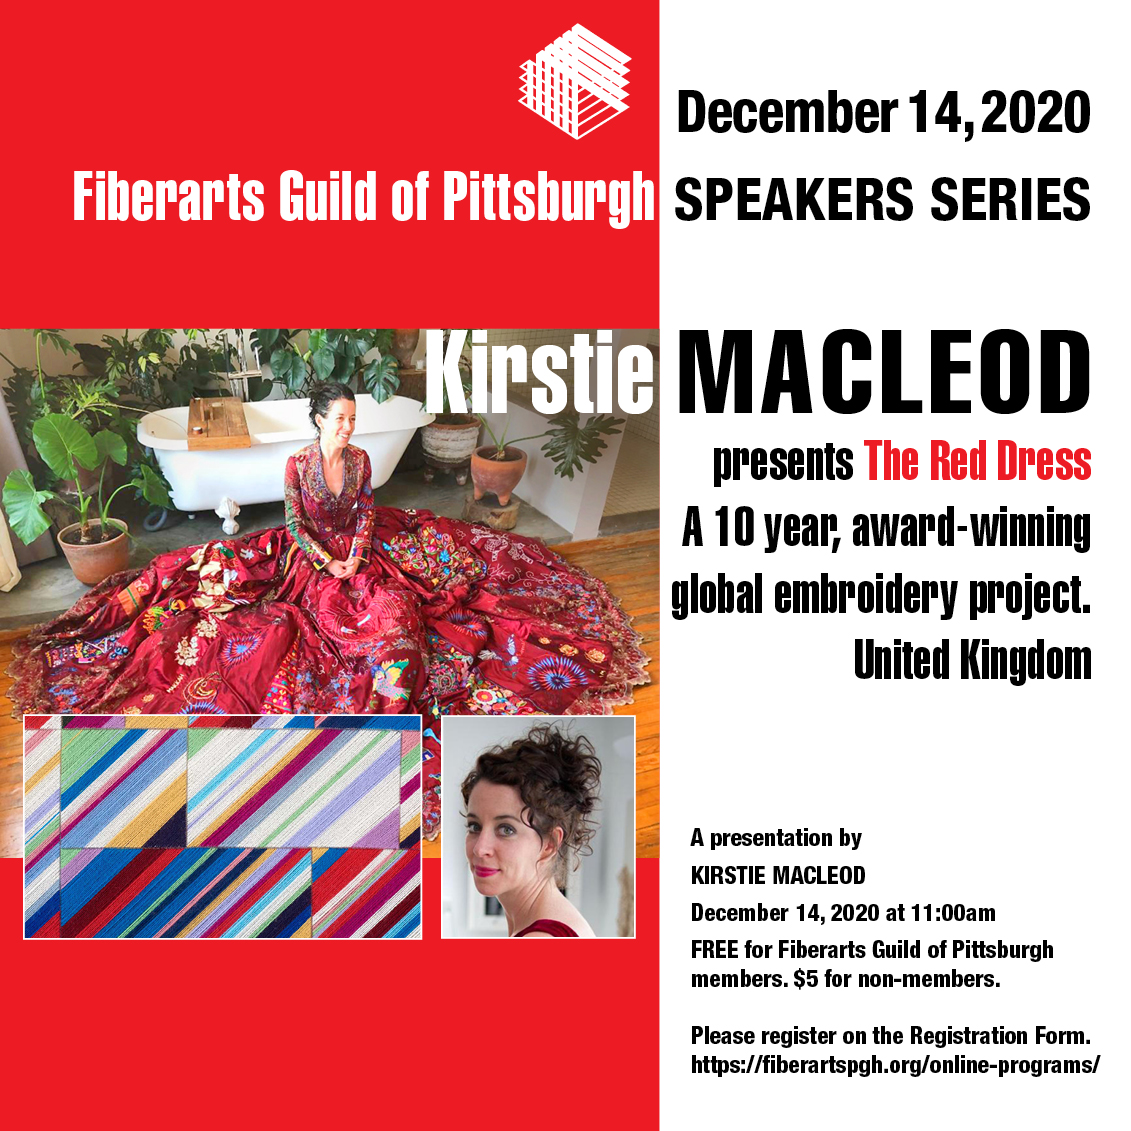 Kristie Macleod lecture announcement